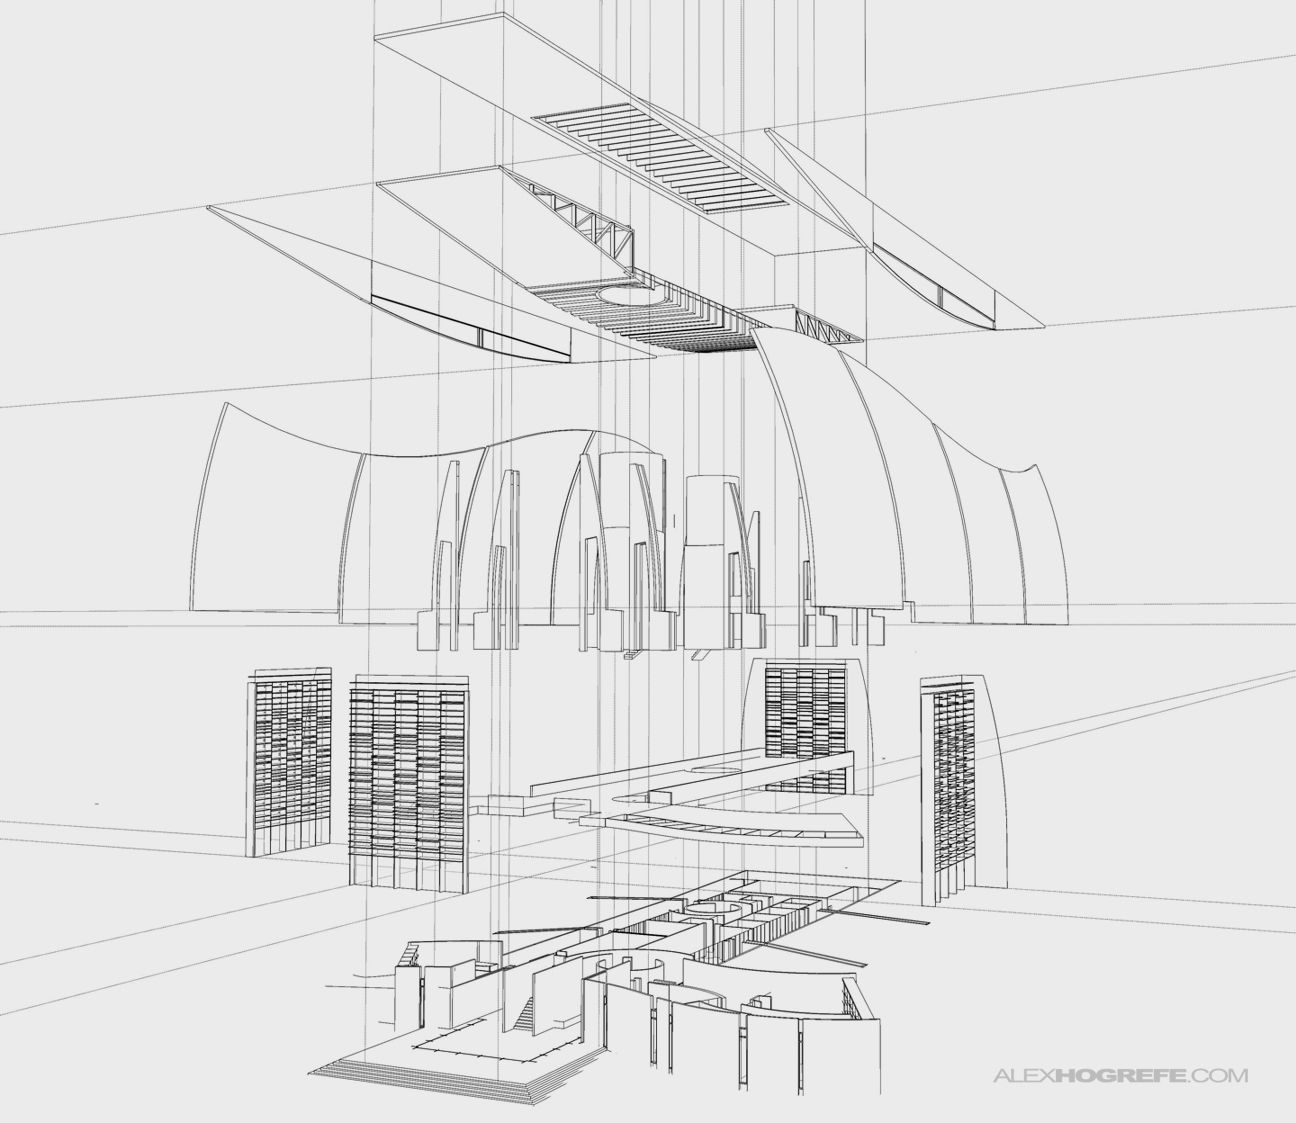 exploded_axon_sketchup_linework_alex_hogrefe